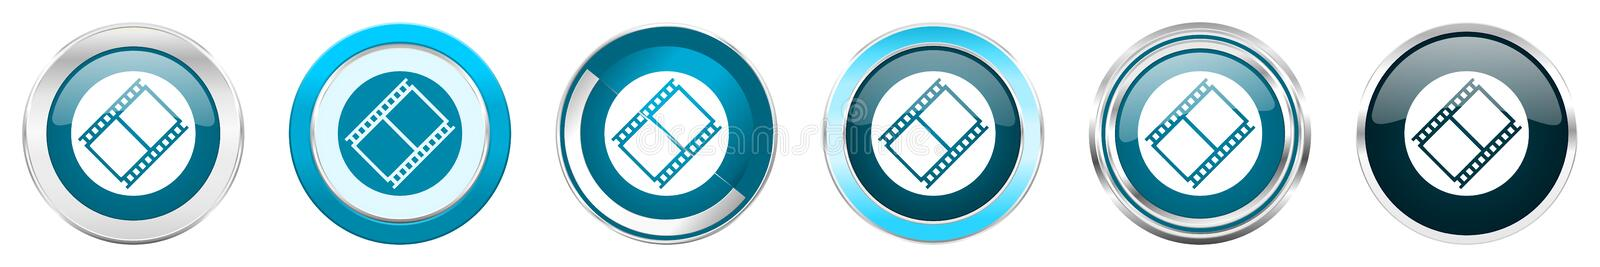 Film silver metallic chrome border icons in 6 options, set of web blue round buttons isolated on white background vector illustration